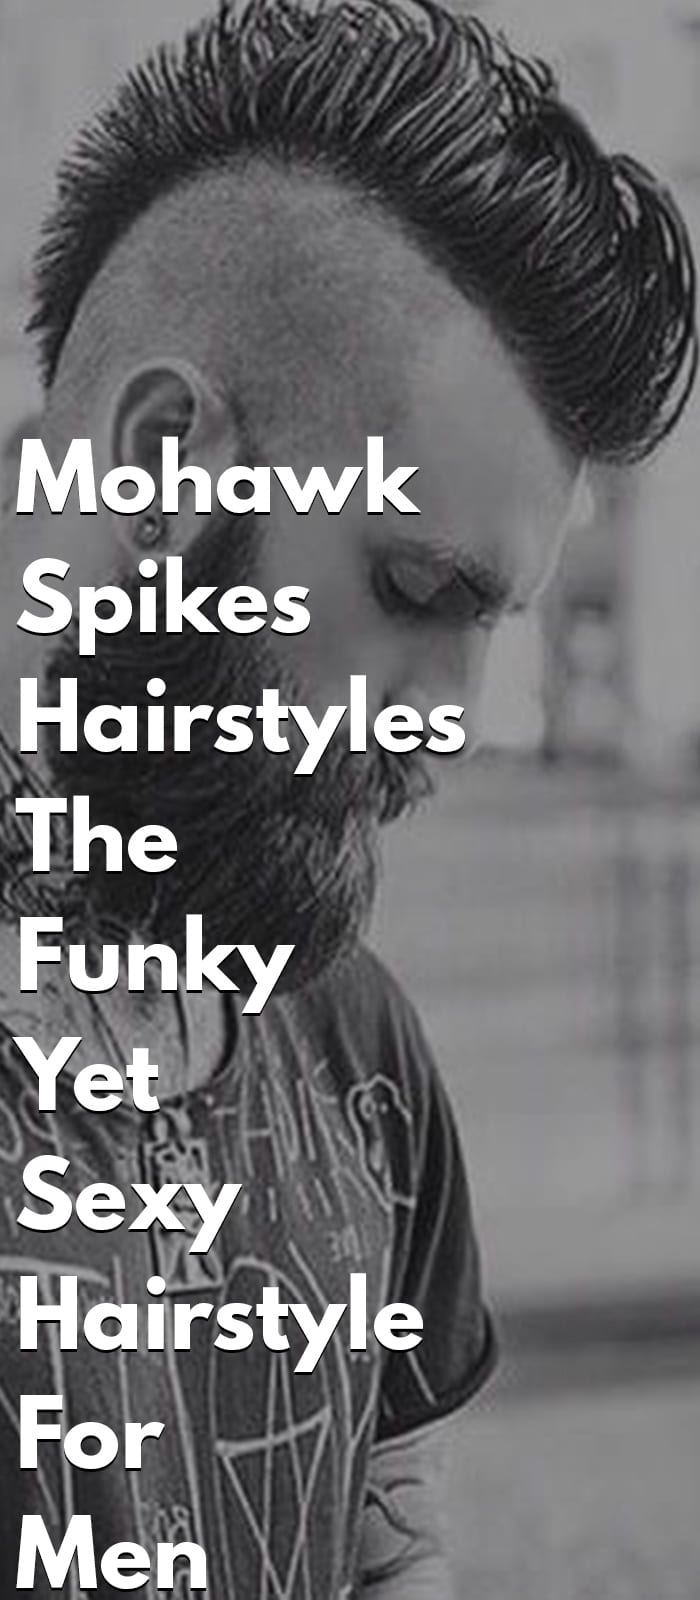 Mohawk Spikes Hairstyles - The Funky Yet Sexy Hairstyle For Men